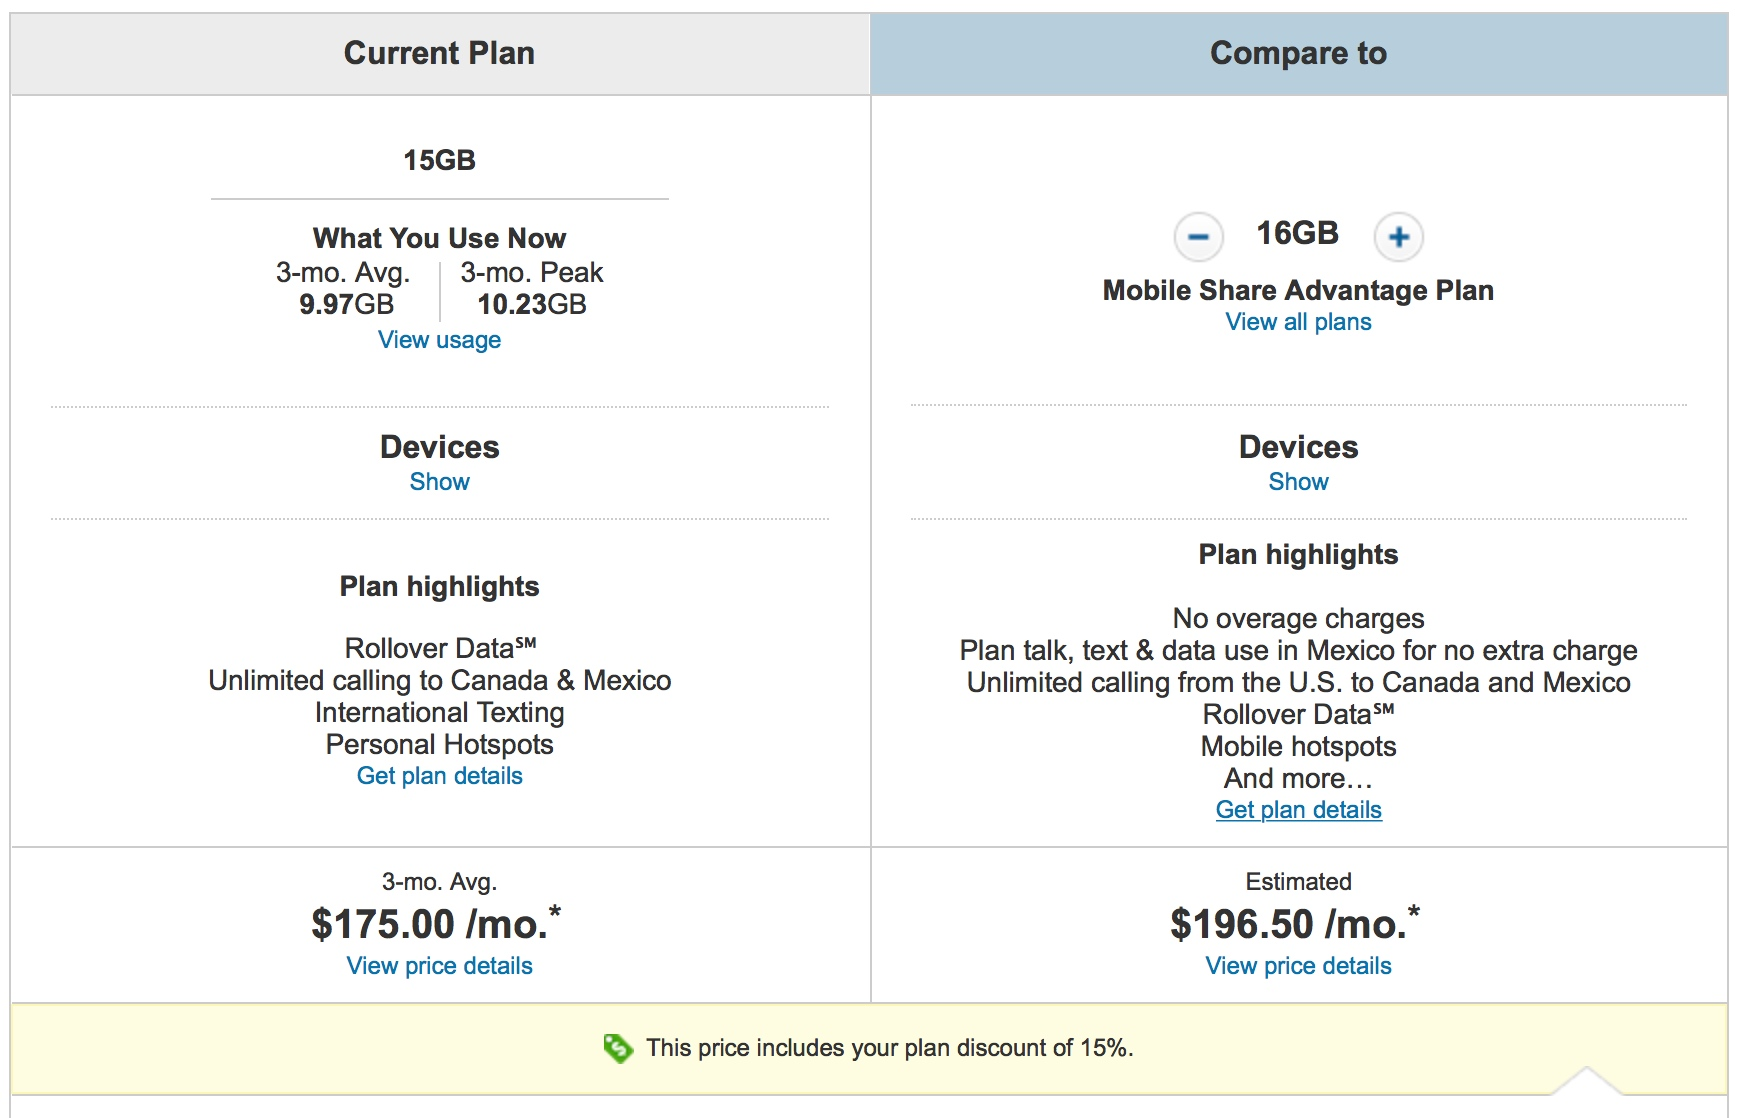 Stock Quote At&t At&t's New Mobileshare Advantage Plan Costs Compared